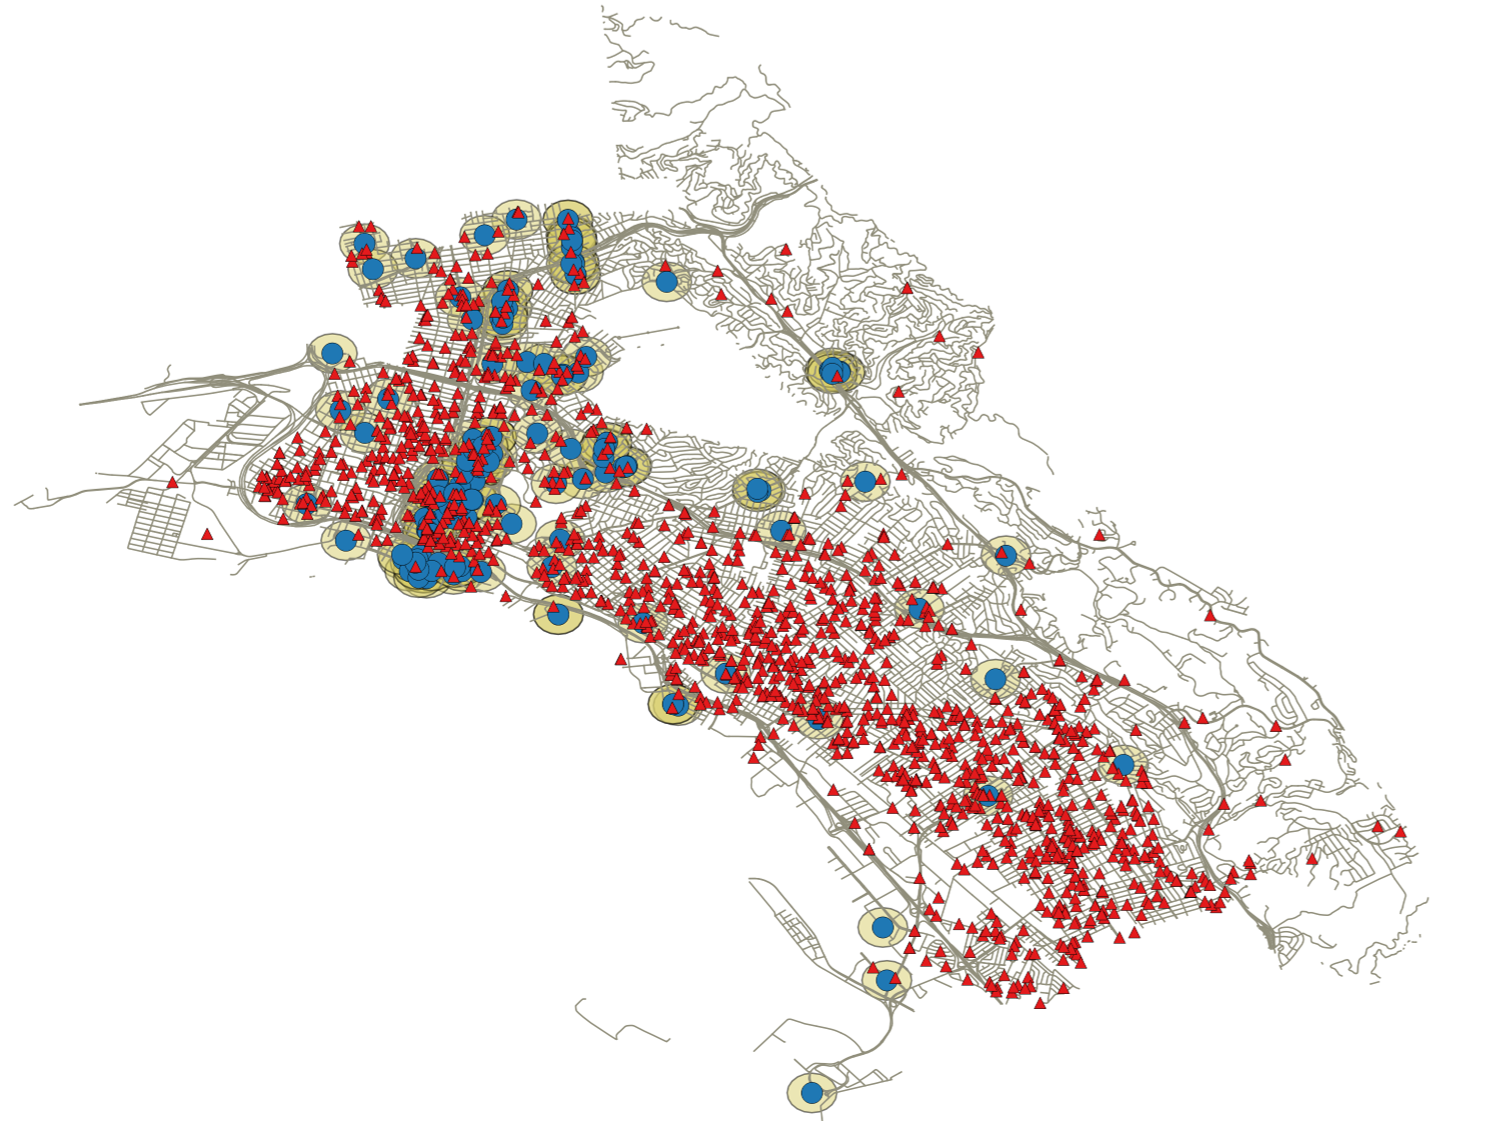 Map of Crime Events and Restaurants in Oakland, CA, 2013-2014